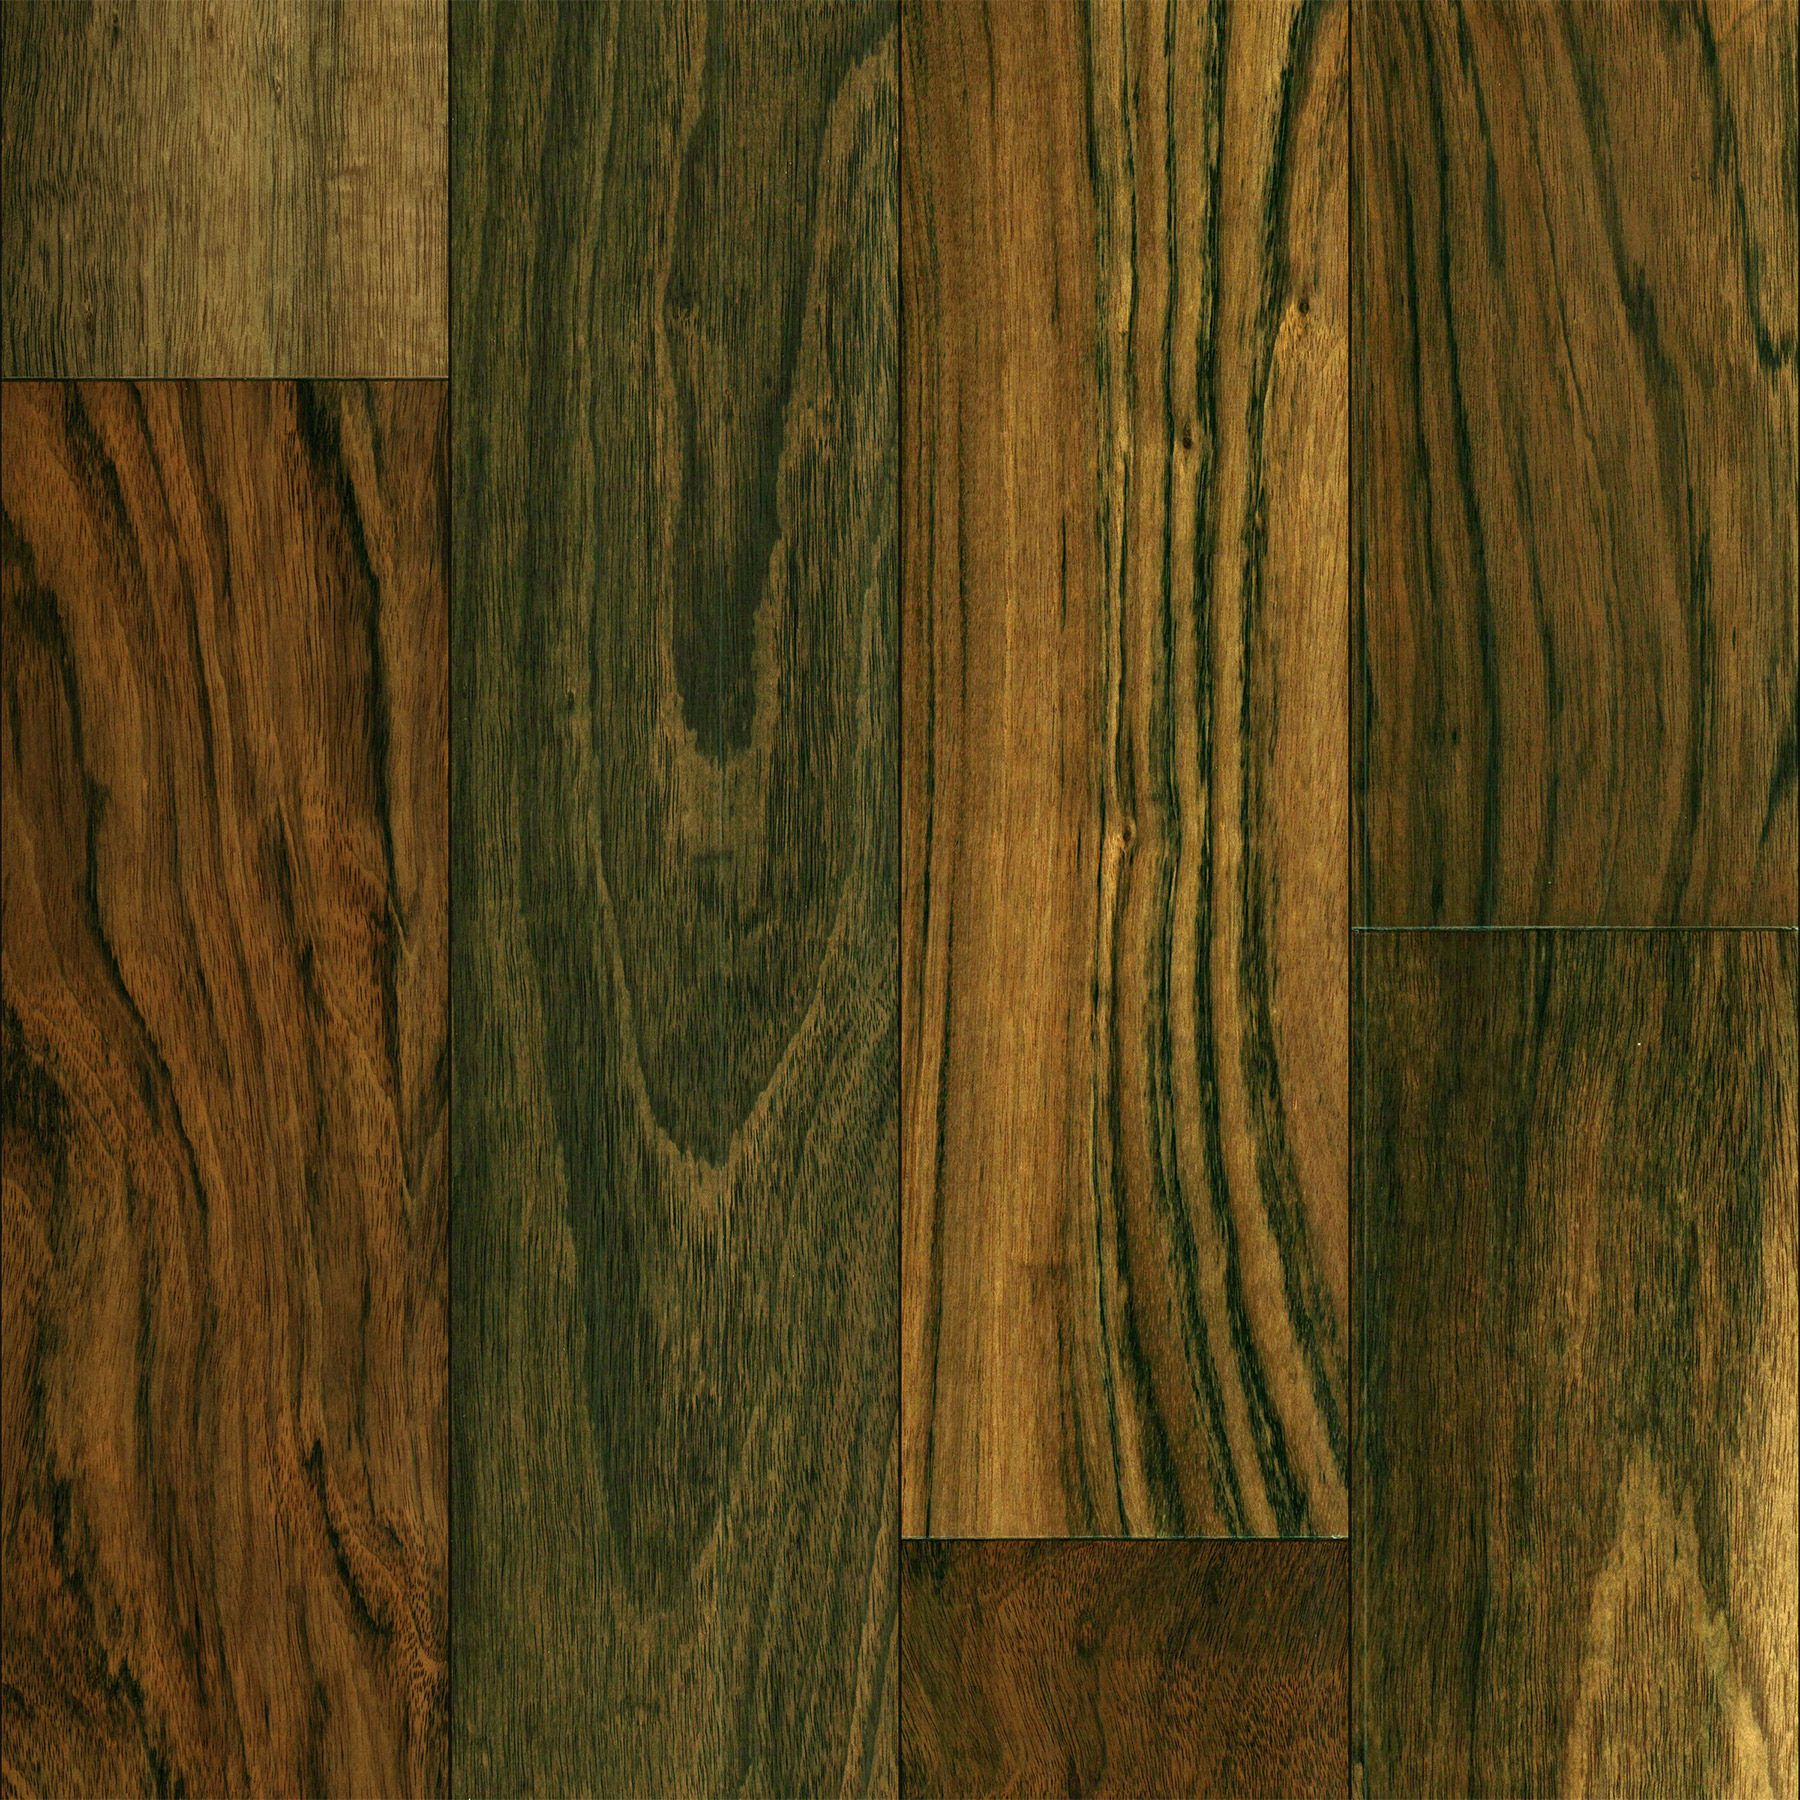 Robina Hardwood 1 2 Thick 5 Wide Click Together Natural Ovengkol Hardwood Hardwood Options Hardwood Floors